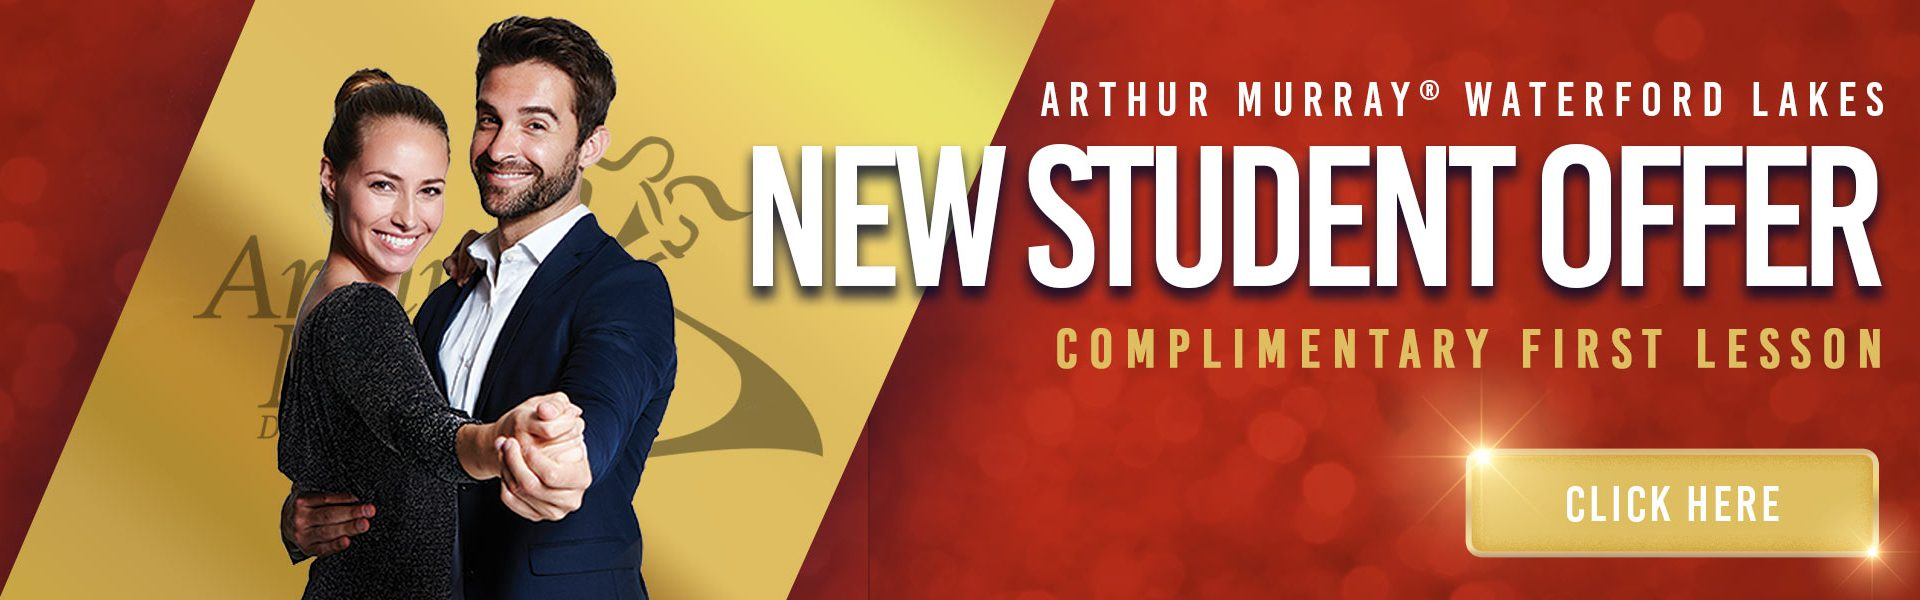 Arthur Murray Waterford Lakes New Student Offer